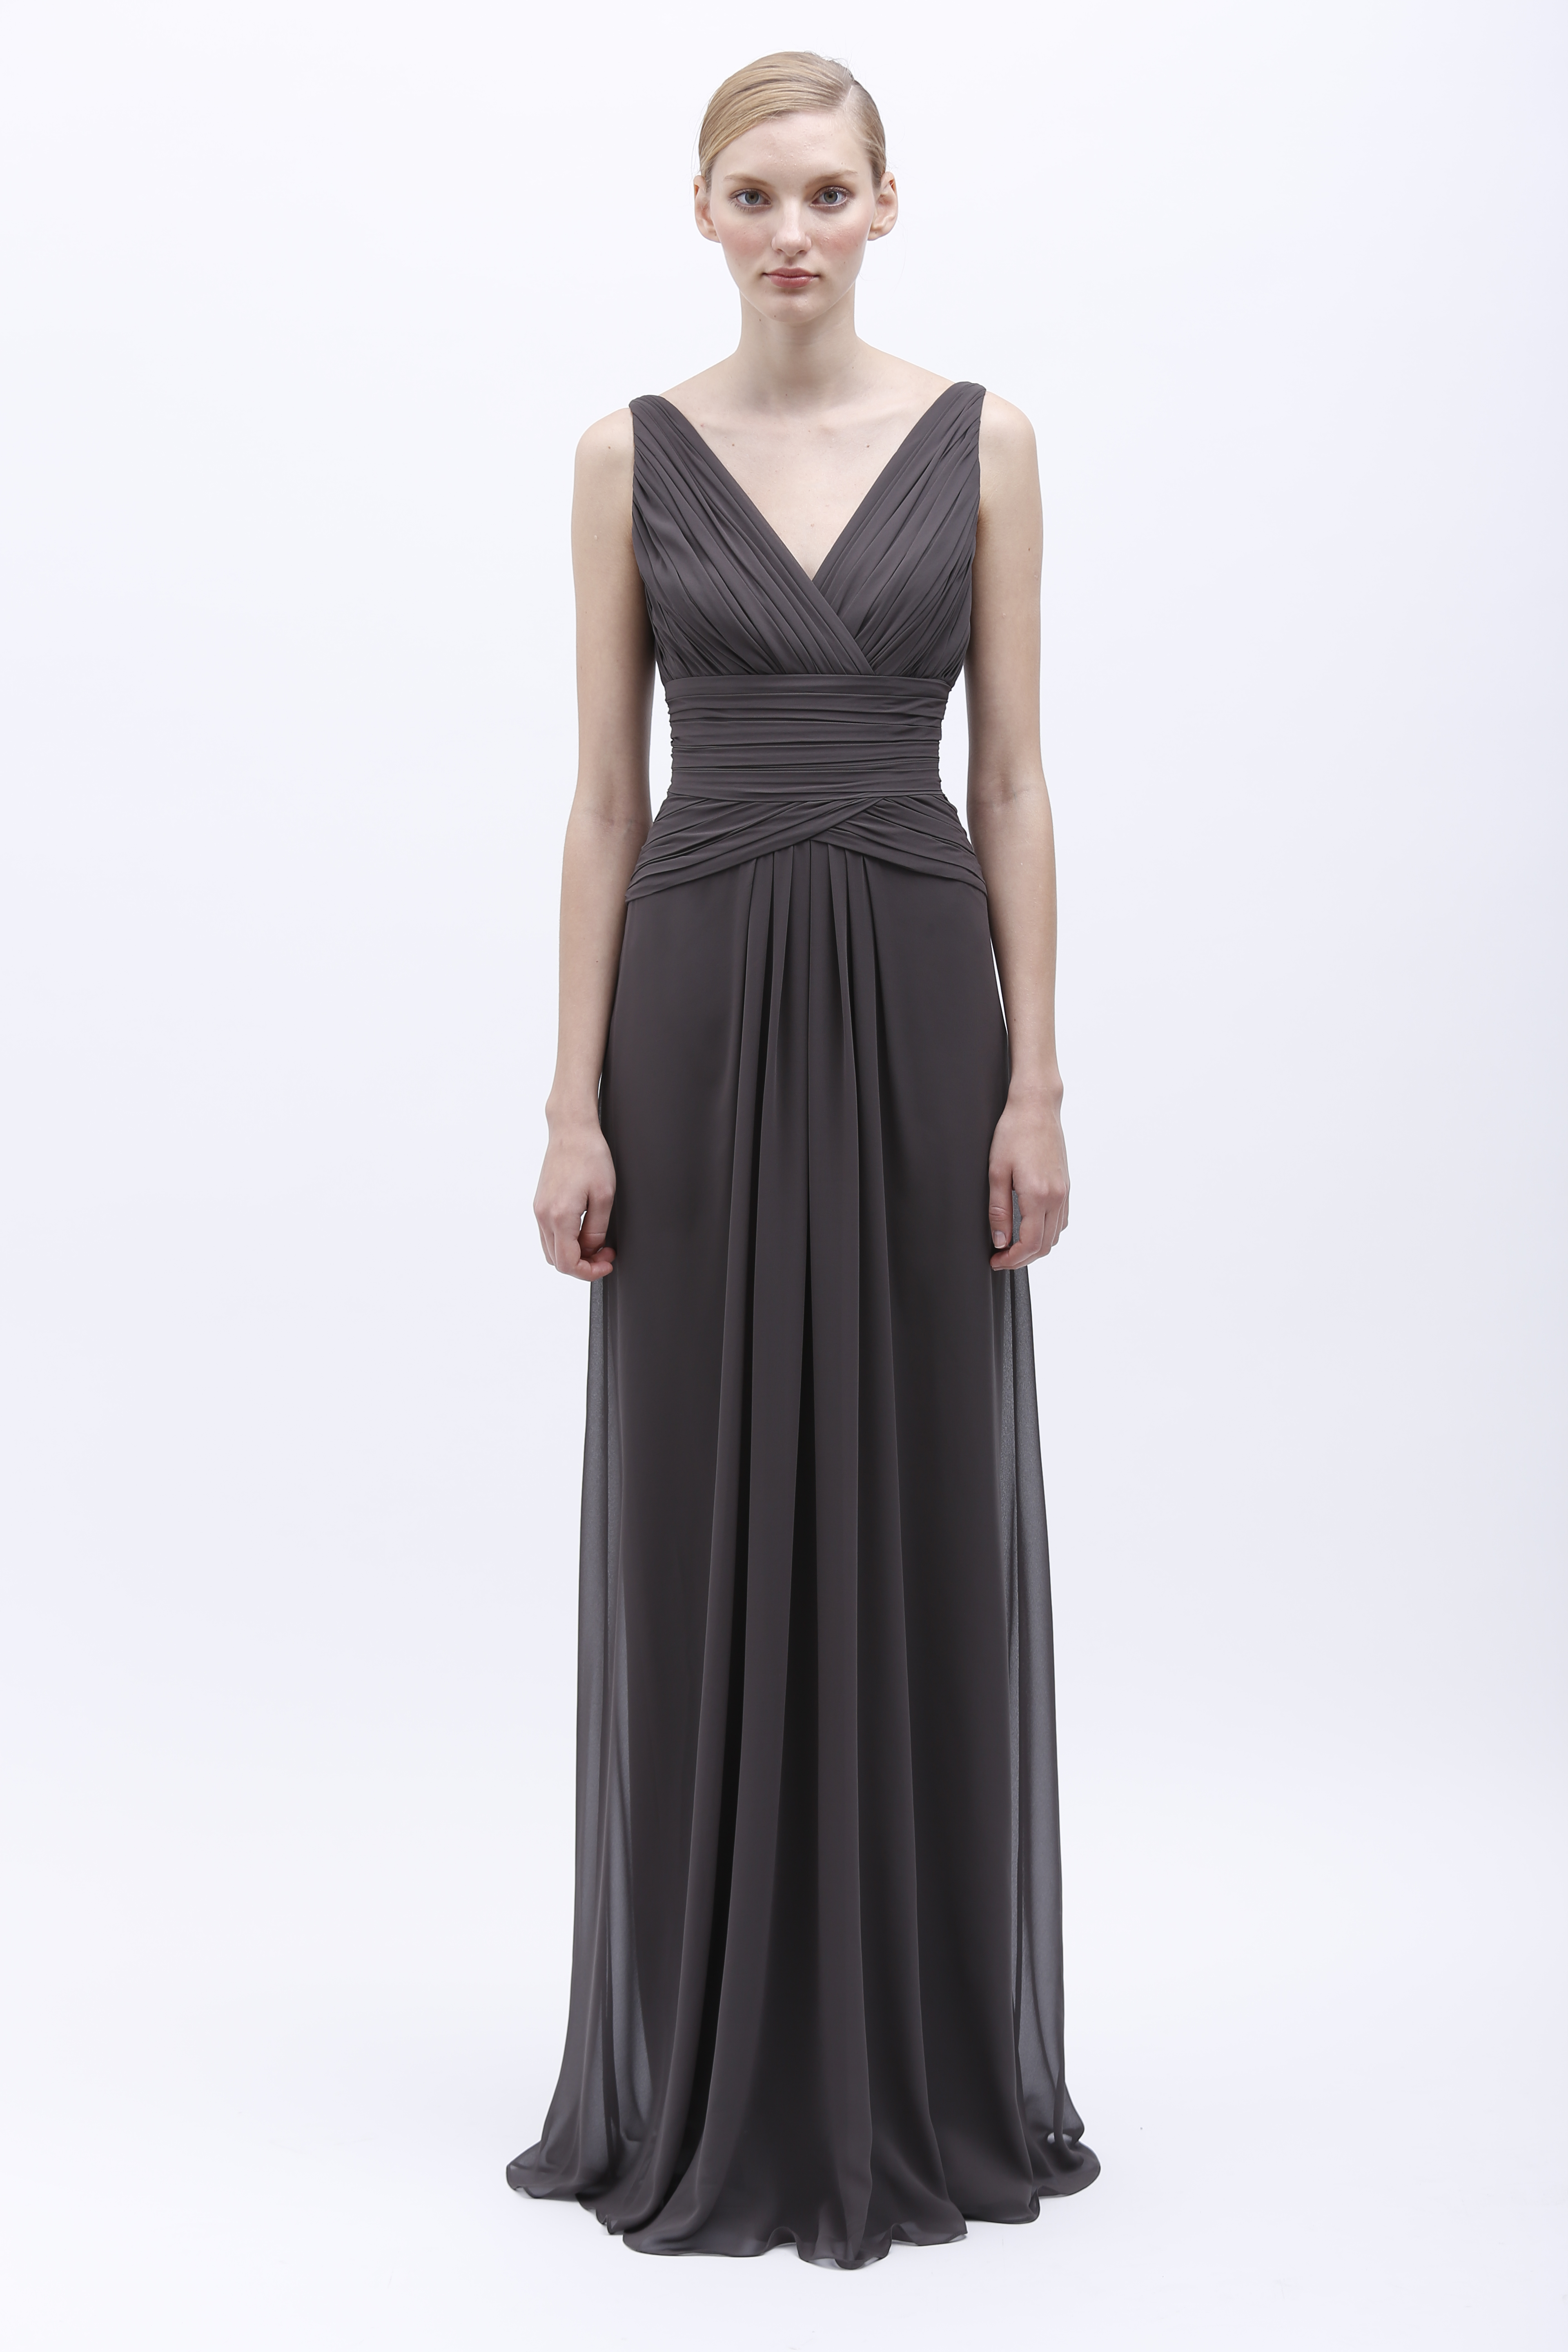 monique lhuillier spring 2014 bridesmaid dress 450136 With charcoal dresses for weddings